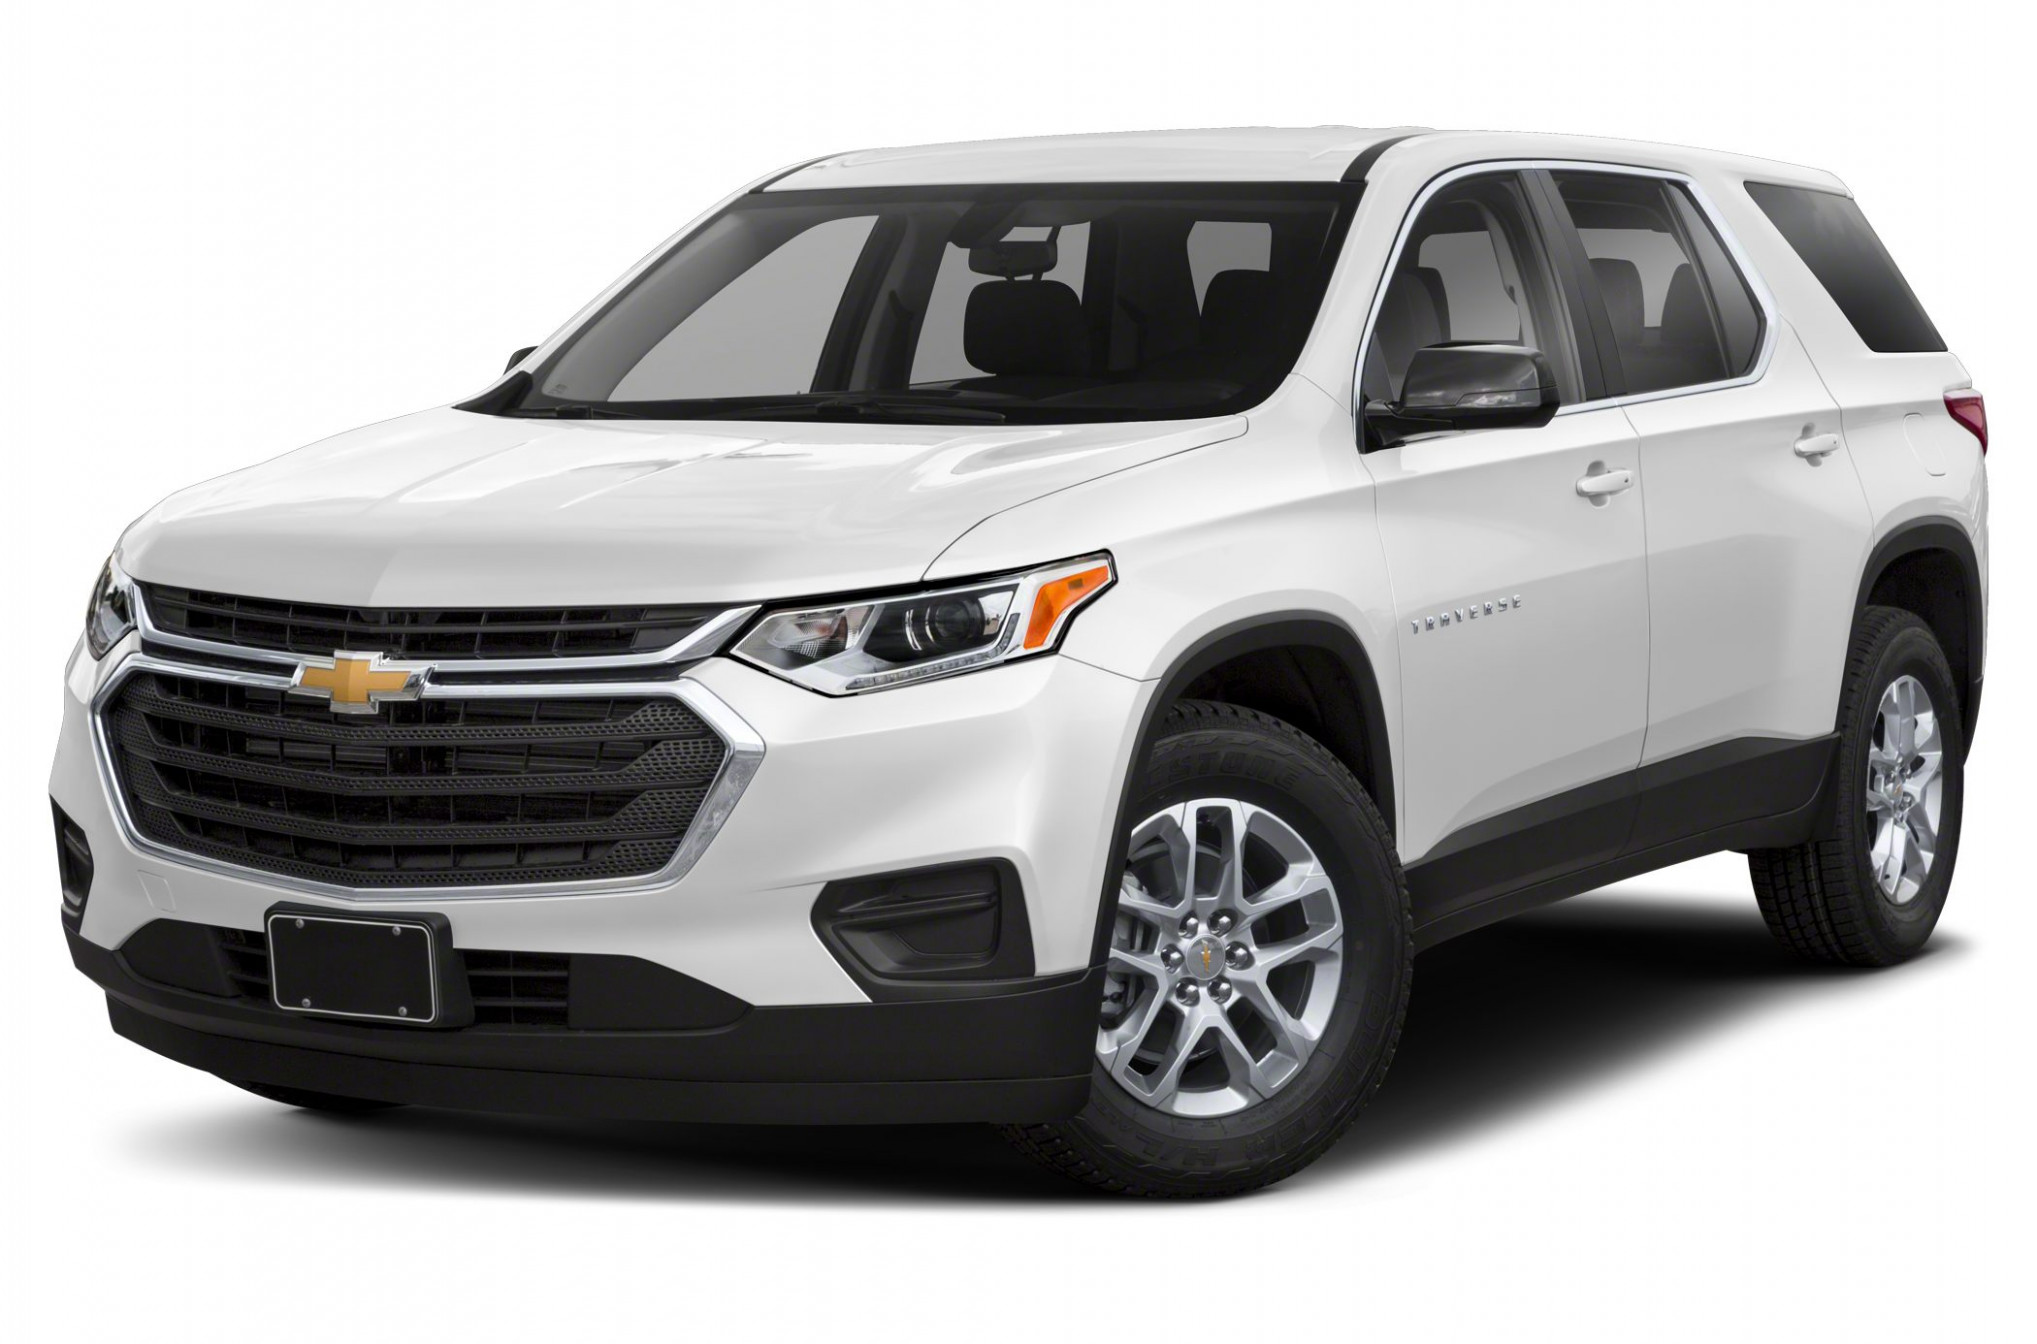 7 Chevrolet Traverse Reviews, Specs, Photos - 2020 chevrolet models